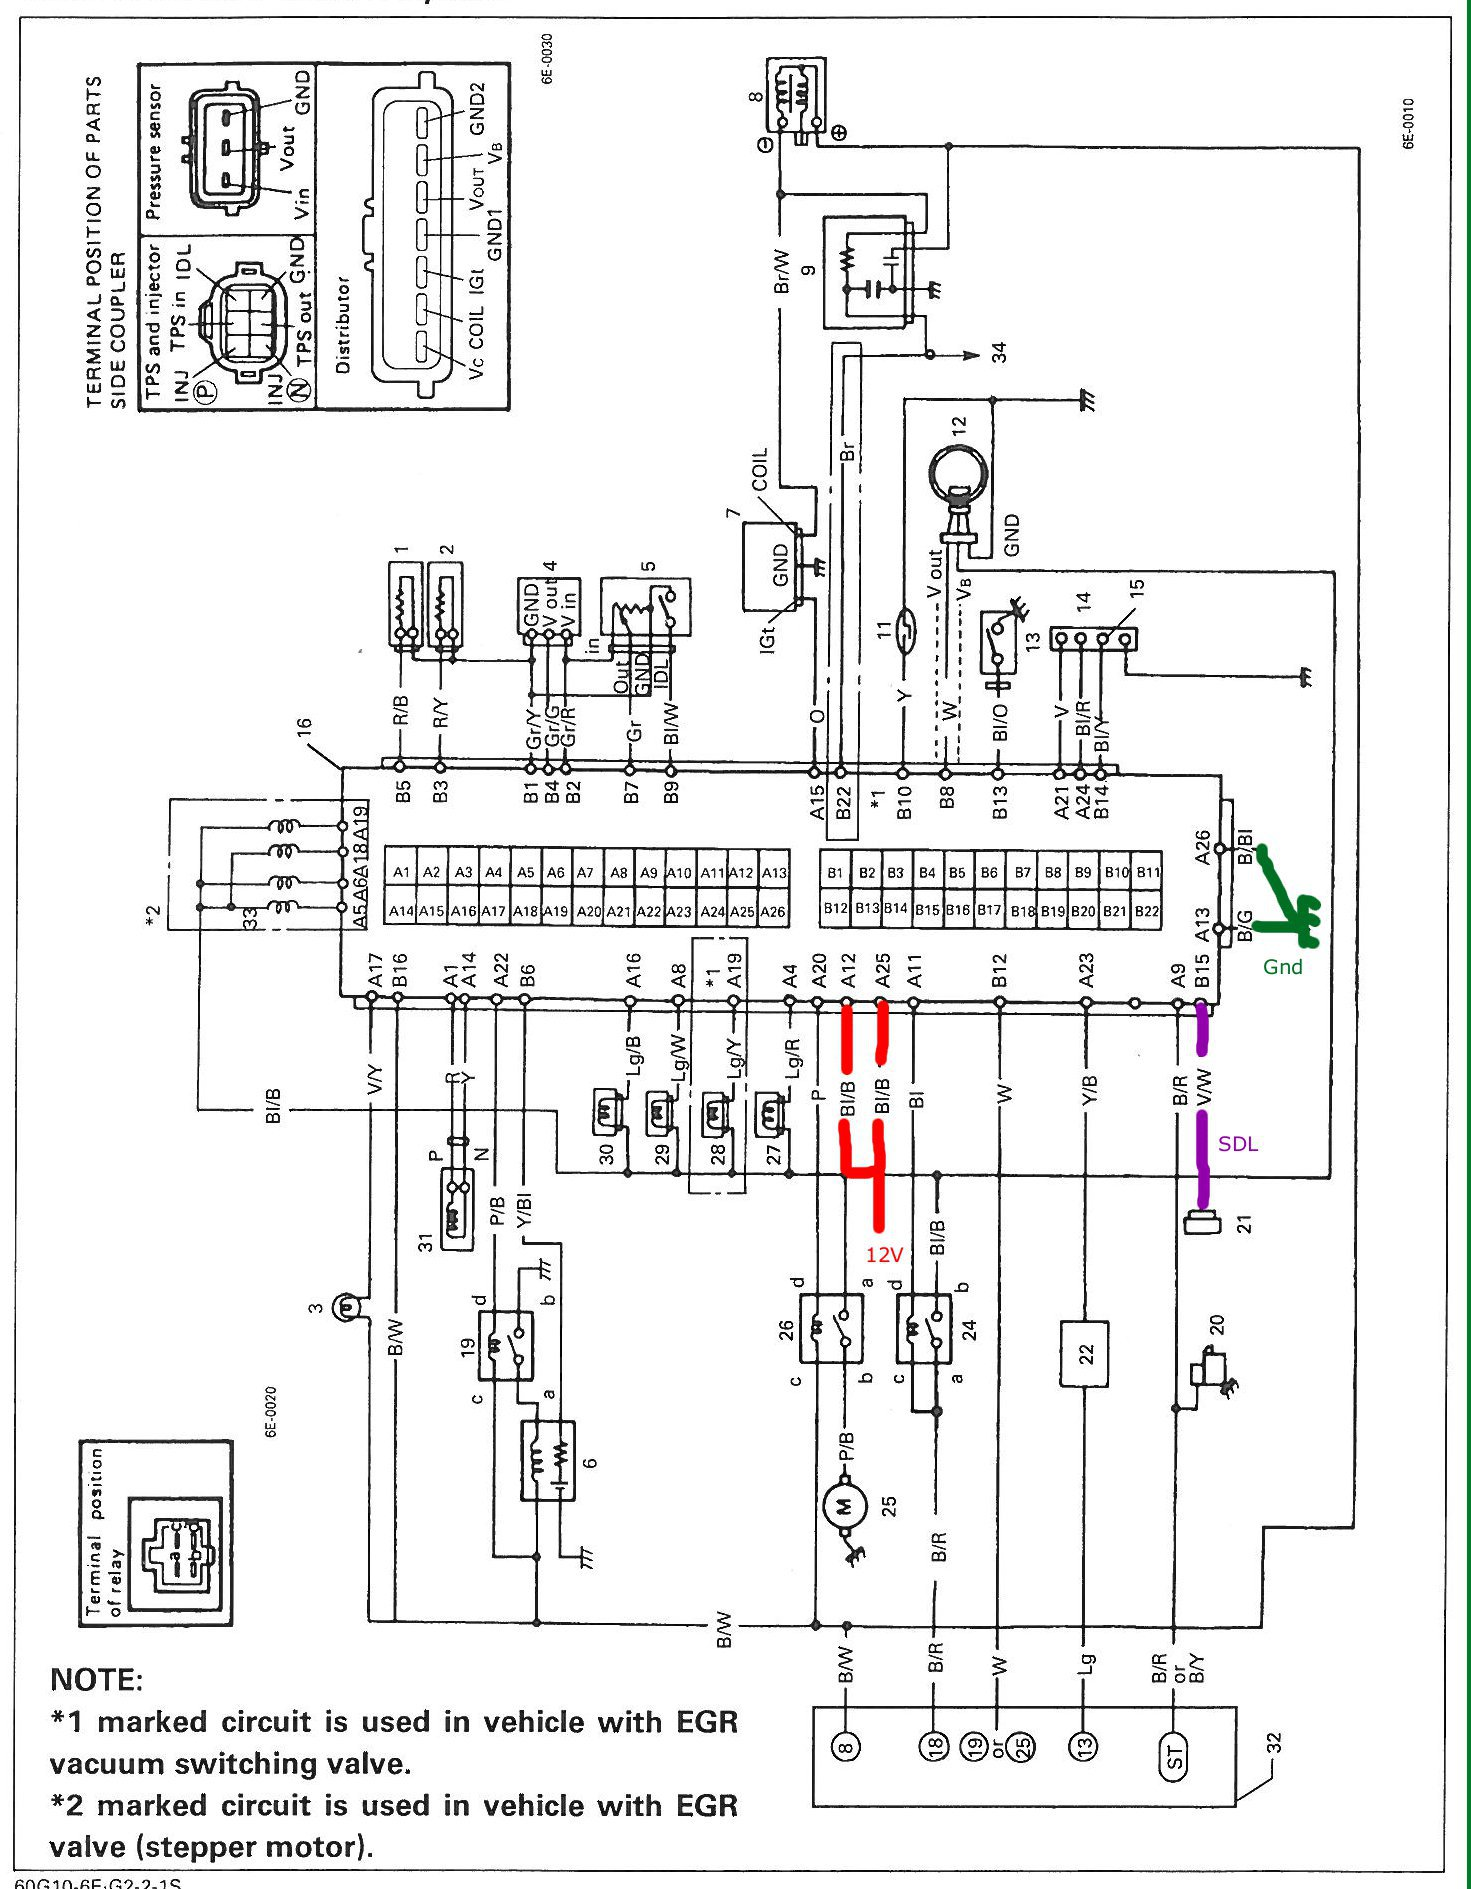 Suzuki X90 Wiring Diagram Electrical Schematics 1999 Esteem Belt Schematic All Kind Of Diagrams U2022